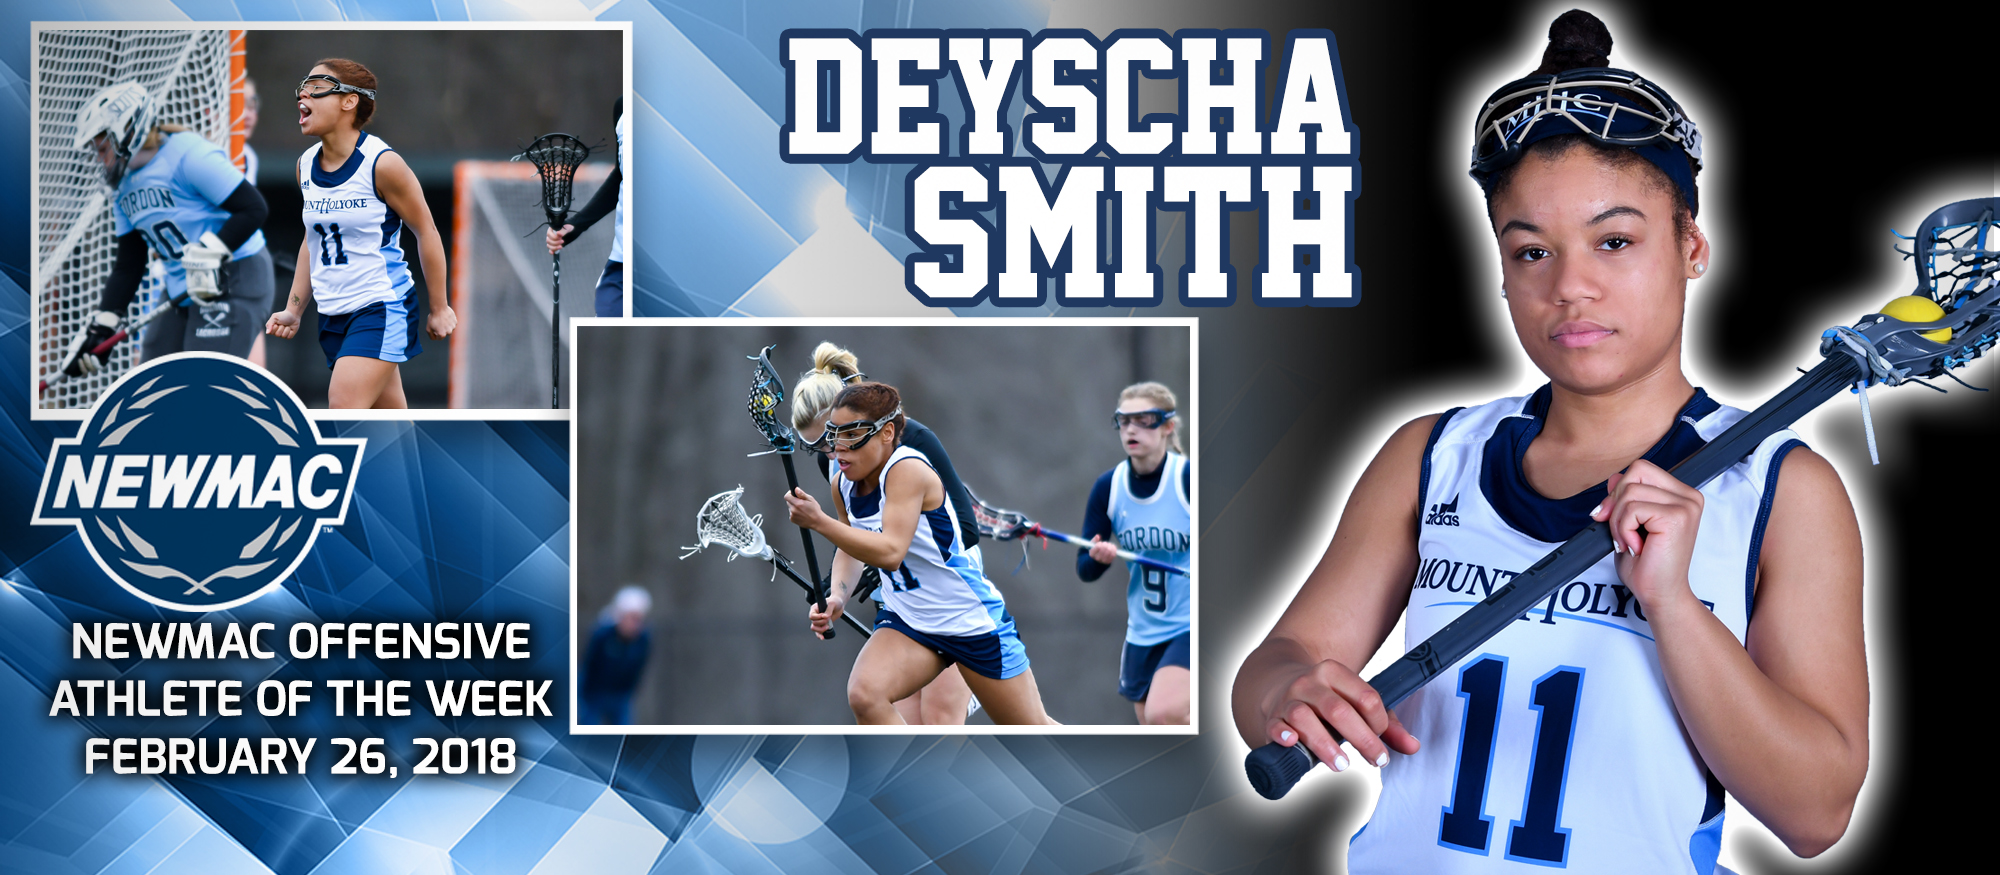 Action graphic promoting Lyons lacrosse student-athlete, Deyscha Smith who was named the NEWMAC Offensive Athlete of the Week for February 25th following her five goal, season-opening performance.